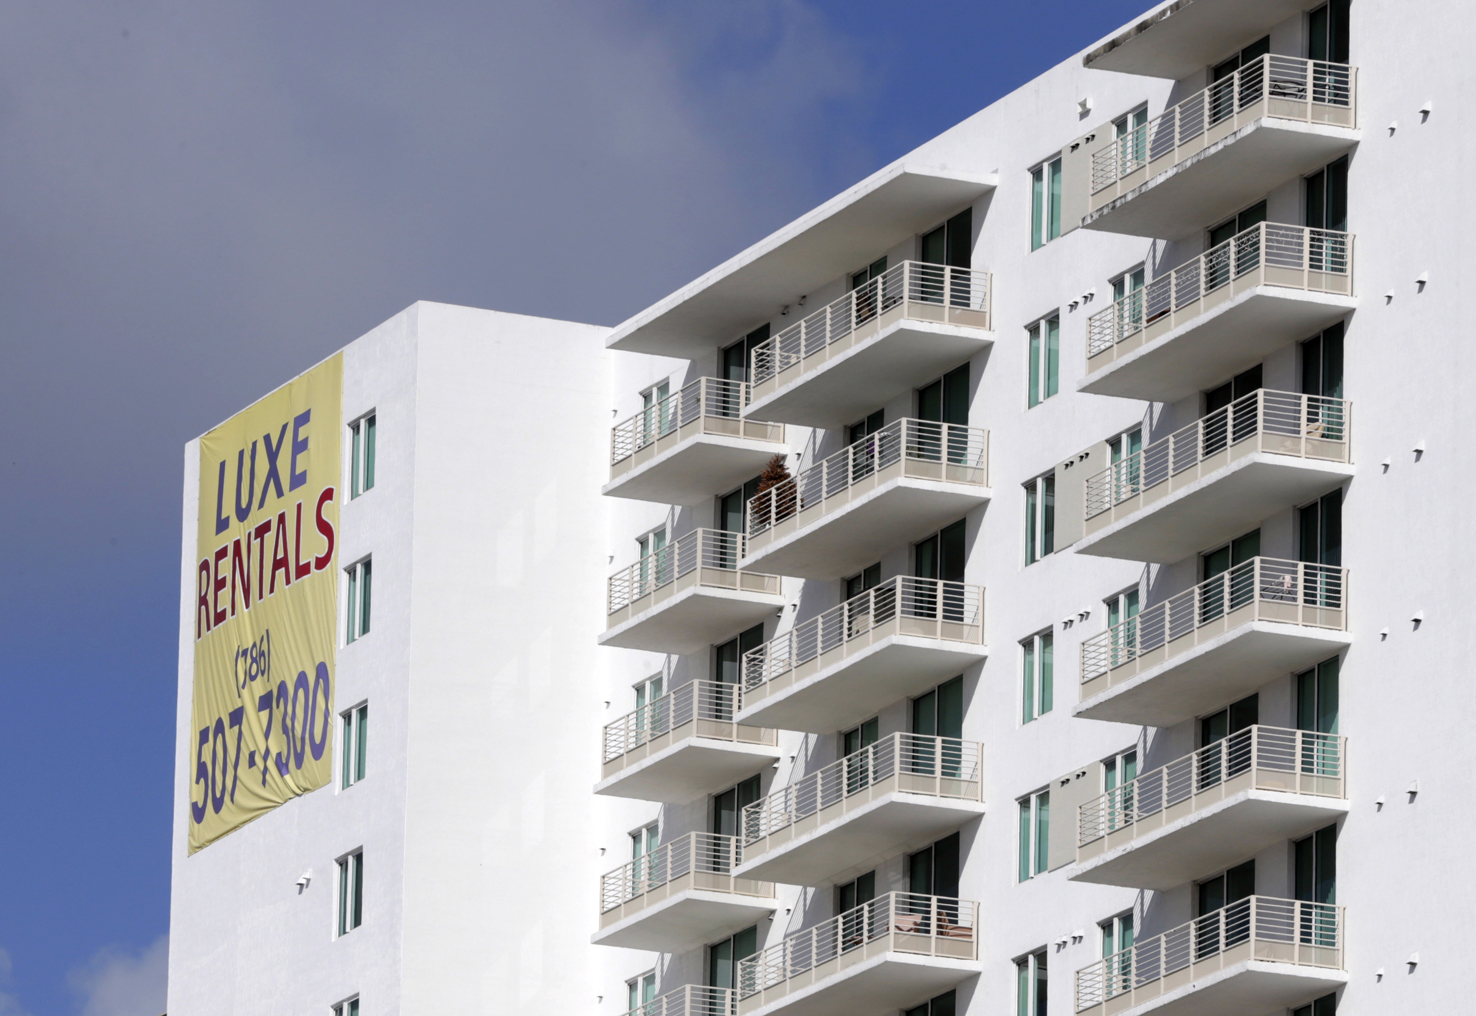 FILE - In this Tuesday, Feb. 2, 2016, photo, newly built apartments are advertised for rent in downtown Miami. On Friday, April 22, 2016, the real estate firm Zillow will release median home rental prices for March. (AP Photo/Lynne Sladky, File)